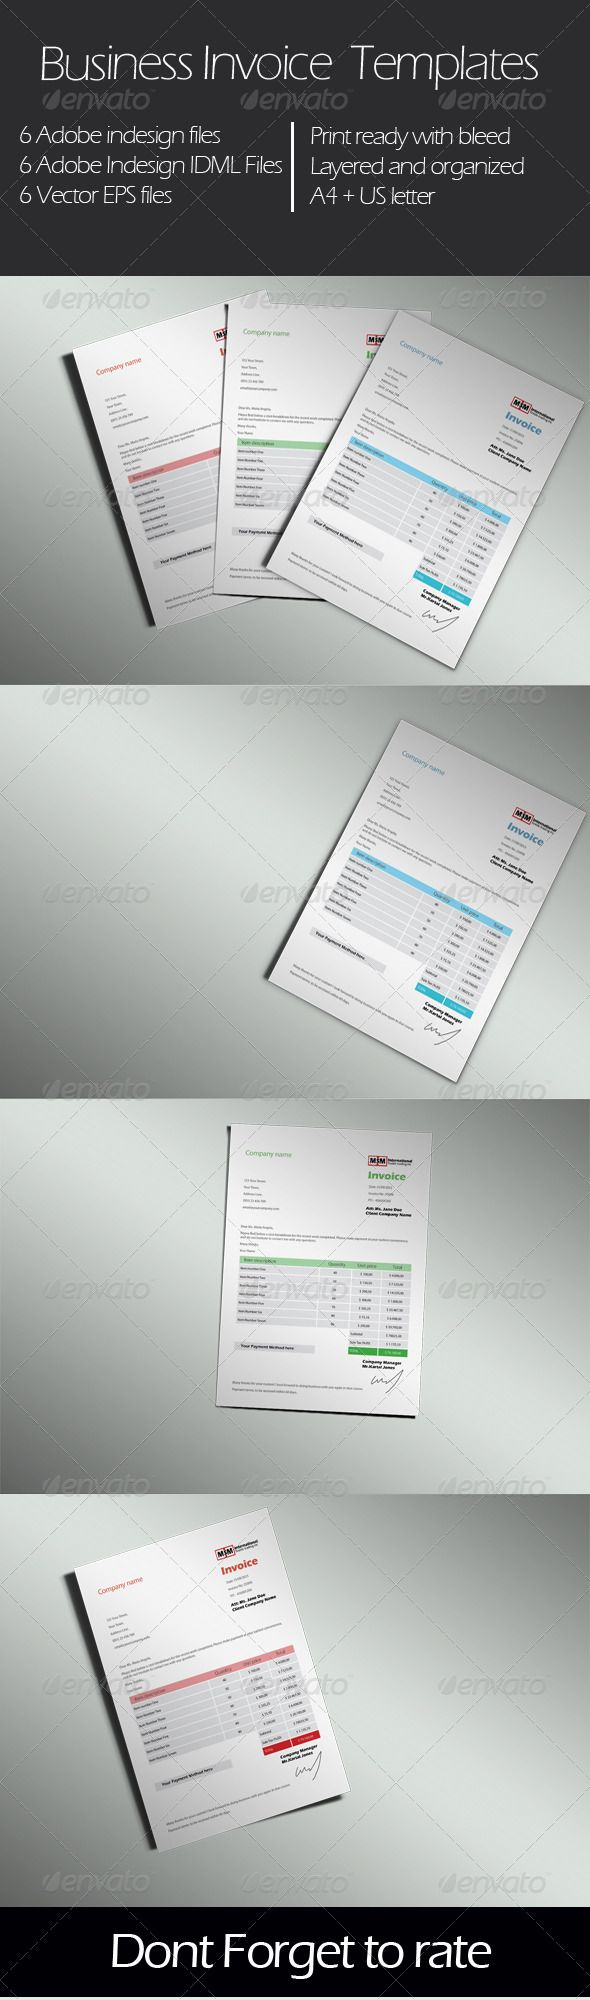 Business Invoice Templates by majinbuu Very clean and simple Invoice     Business Invoice Templates by majinbuu Very clean and simple Invoice  templates for your business come with 3 different colors  Features  6 Adobe  indesign